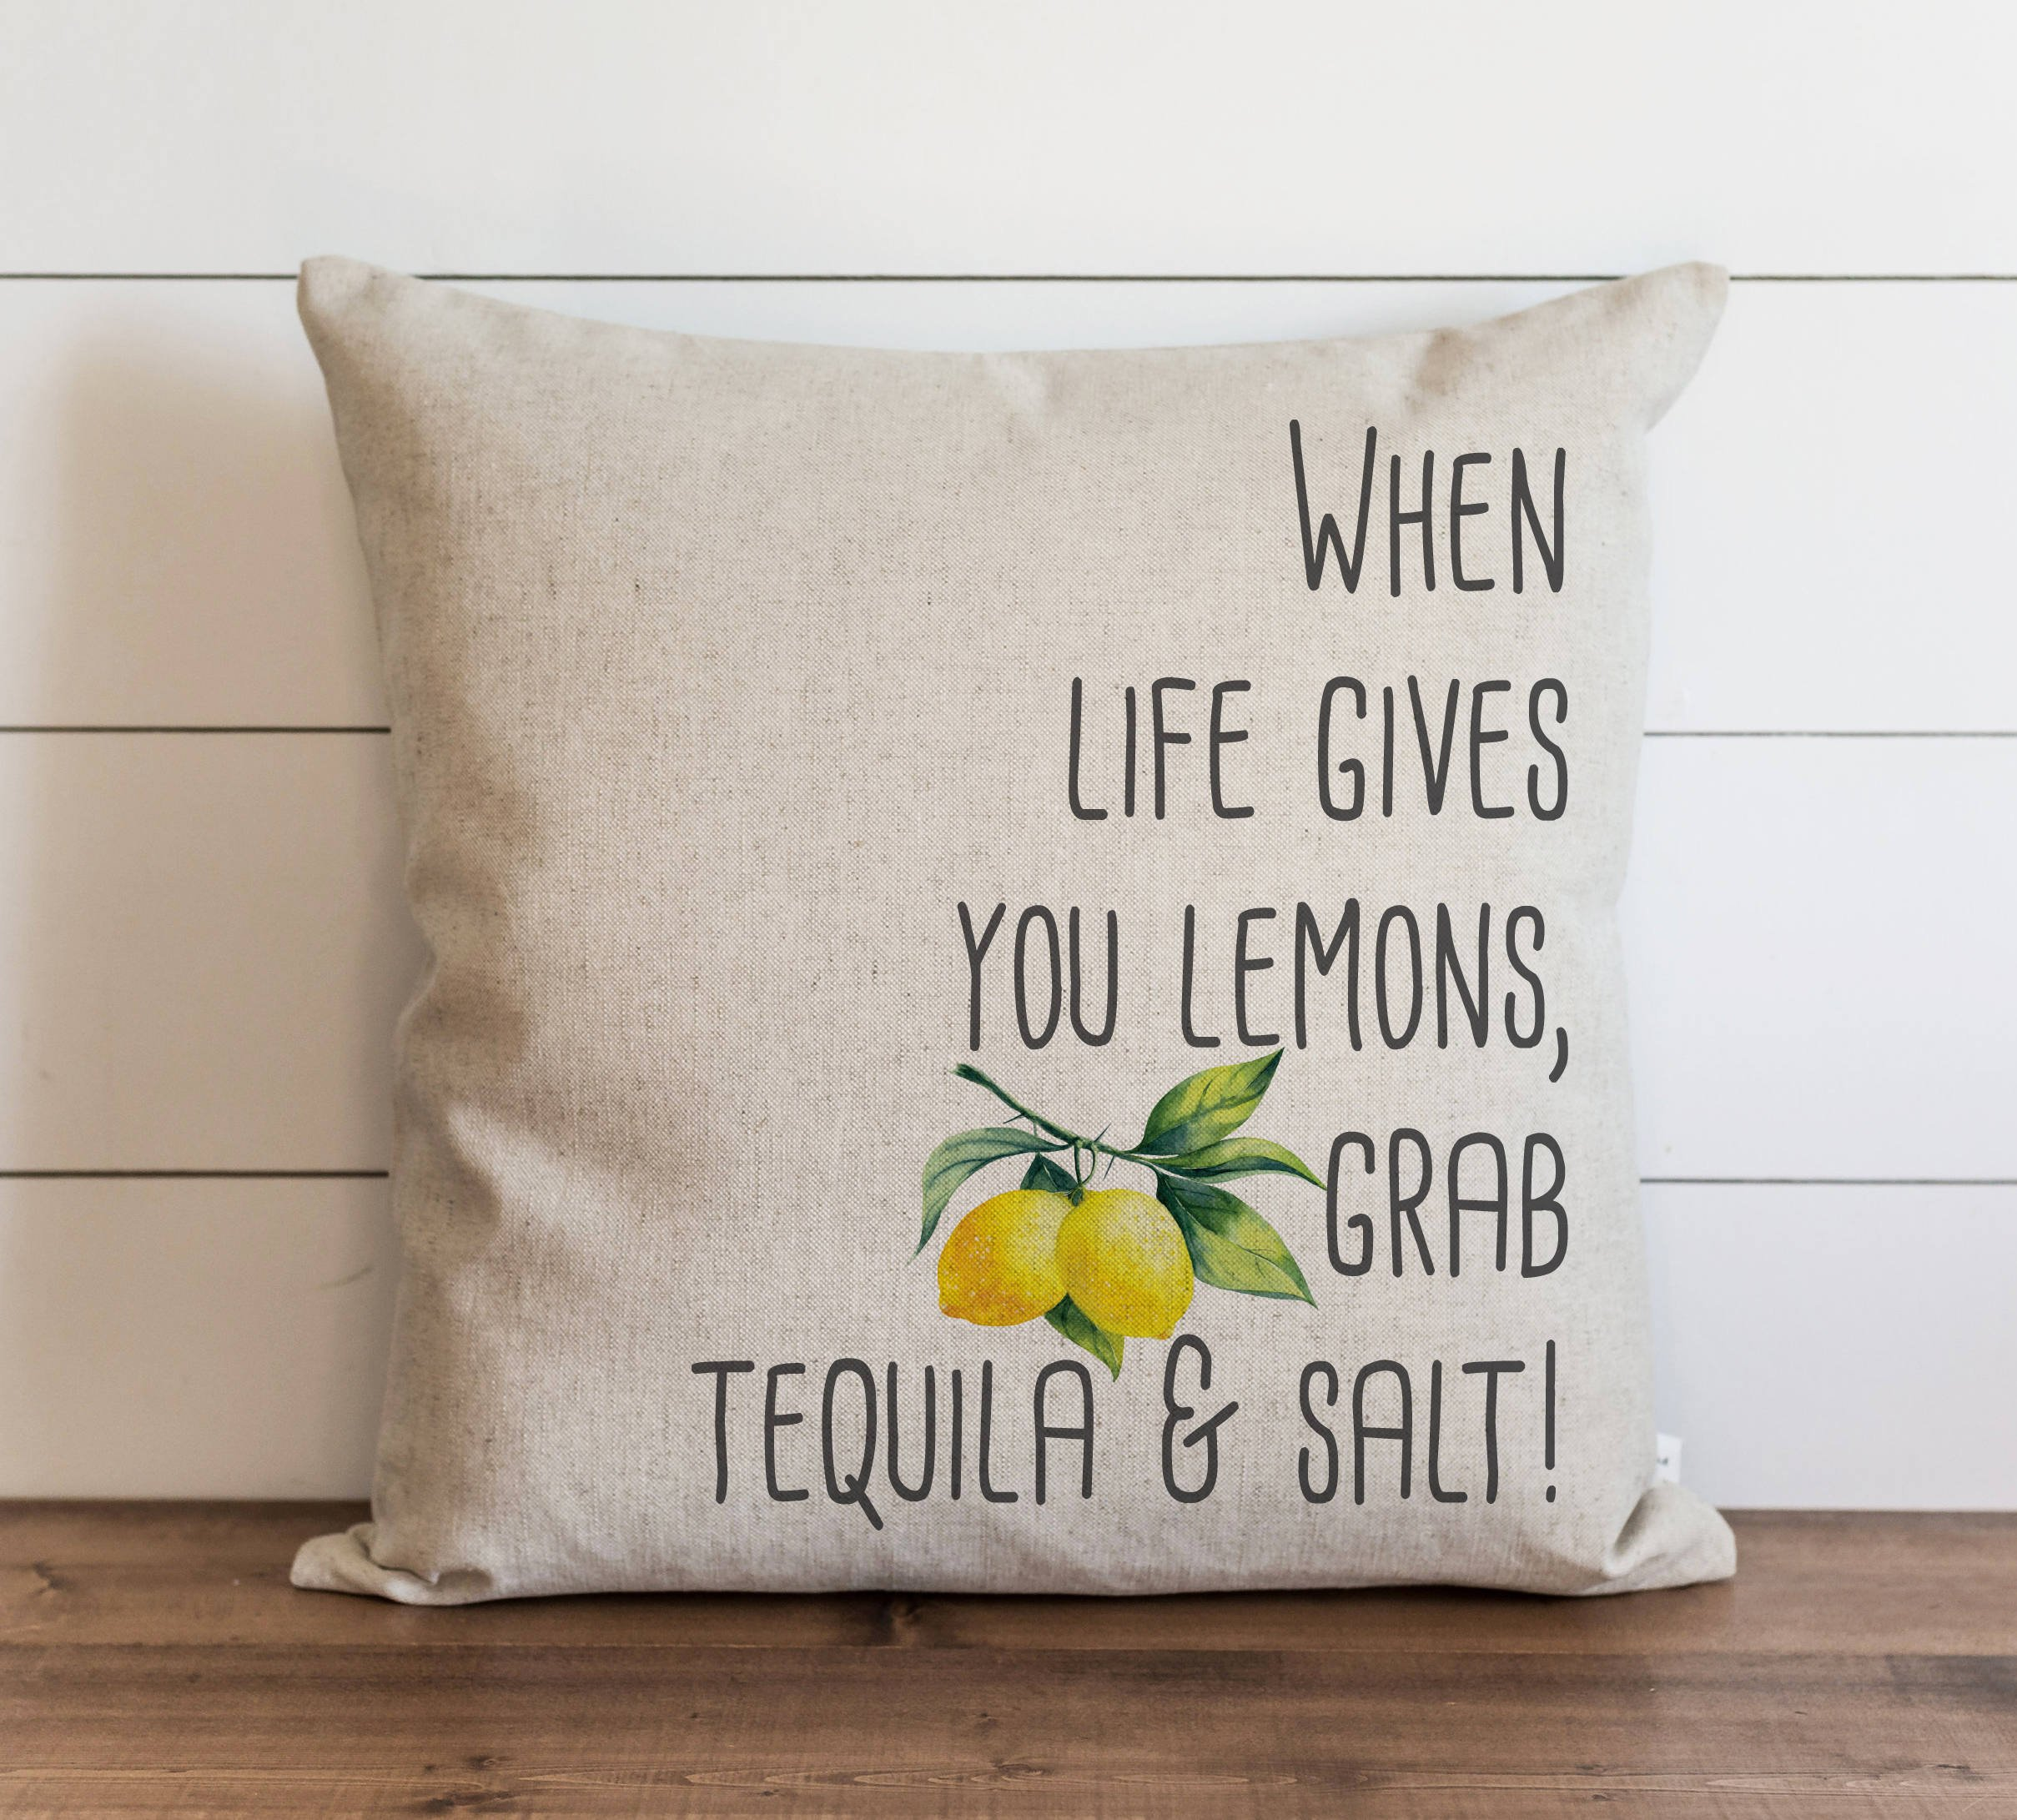 CAROLJU When Life Gives You Lemons Grab Tequila and Salt 18 x 18 inch Pillow Cover Summer Everyday Tropical Fruit Gift Accent Pillow